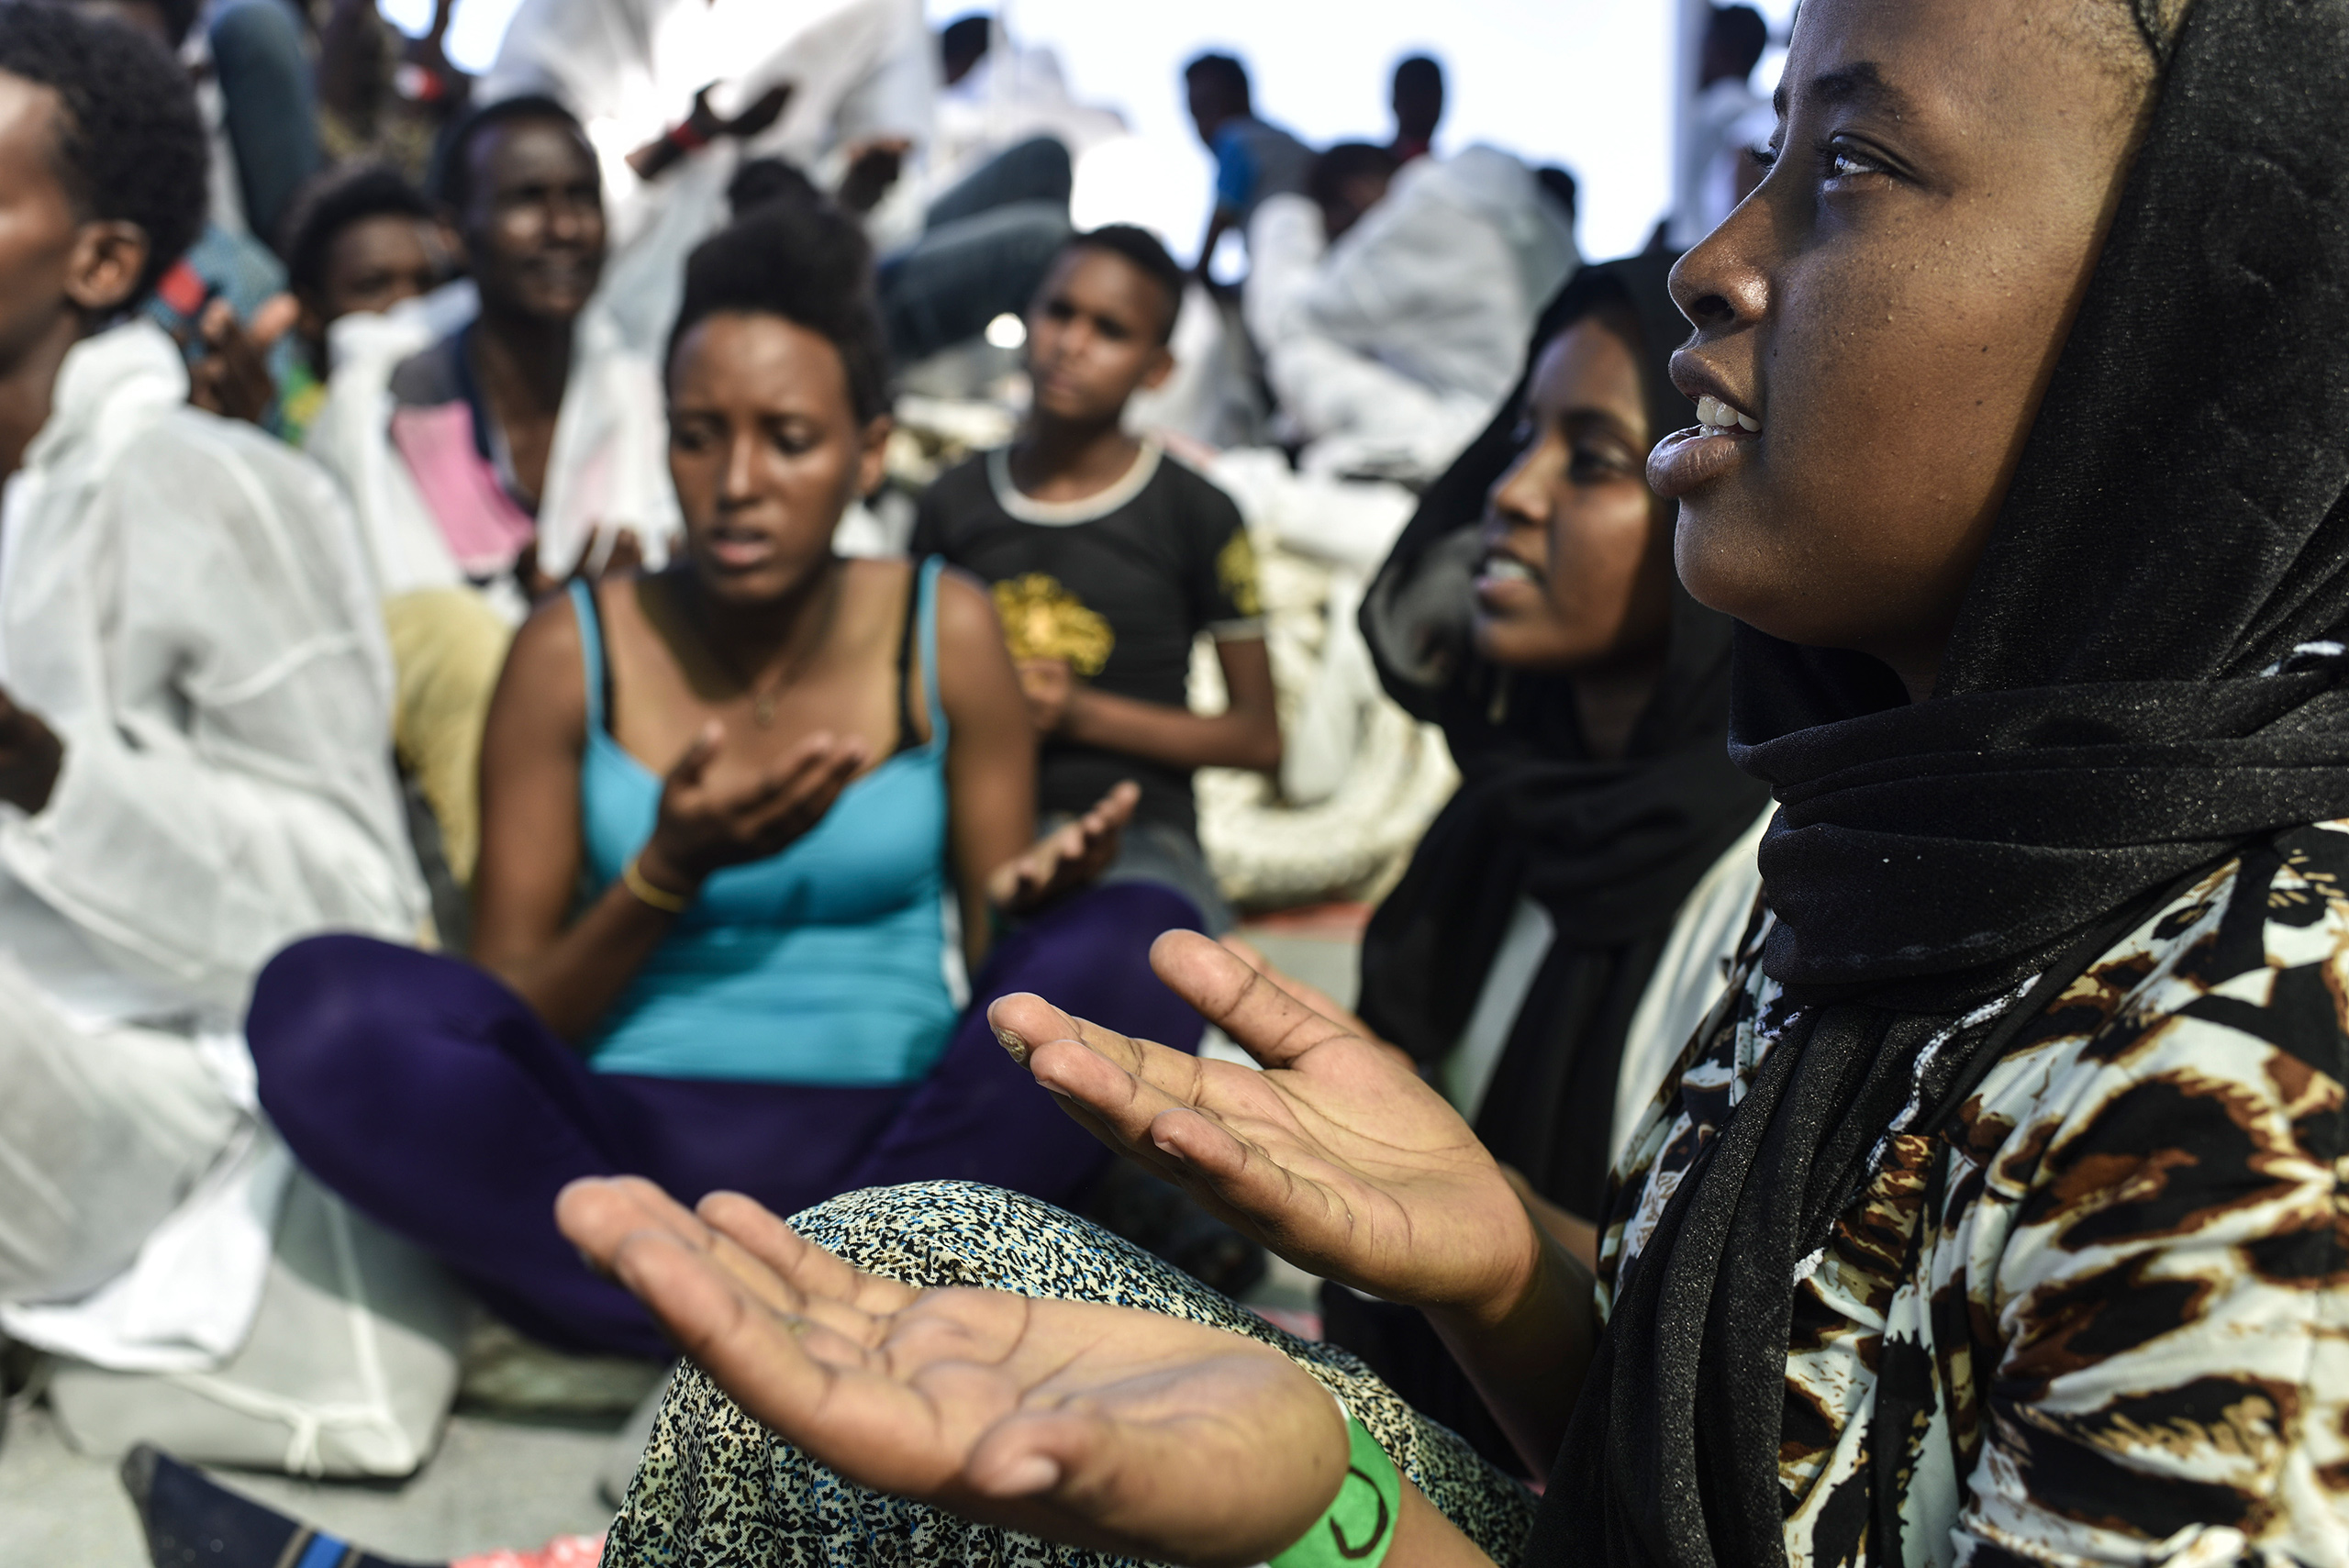 Eritrean Orthodox Christian women sing and give thanks on the MV Aquarius, Aug. 21, 2016.